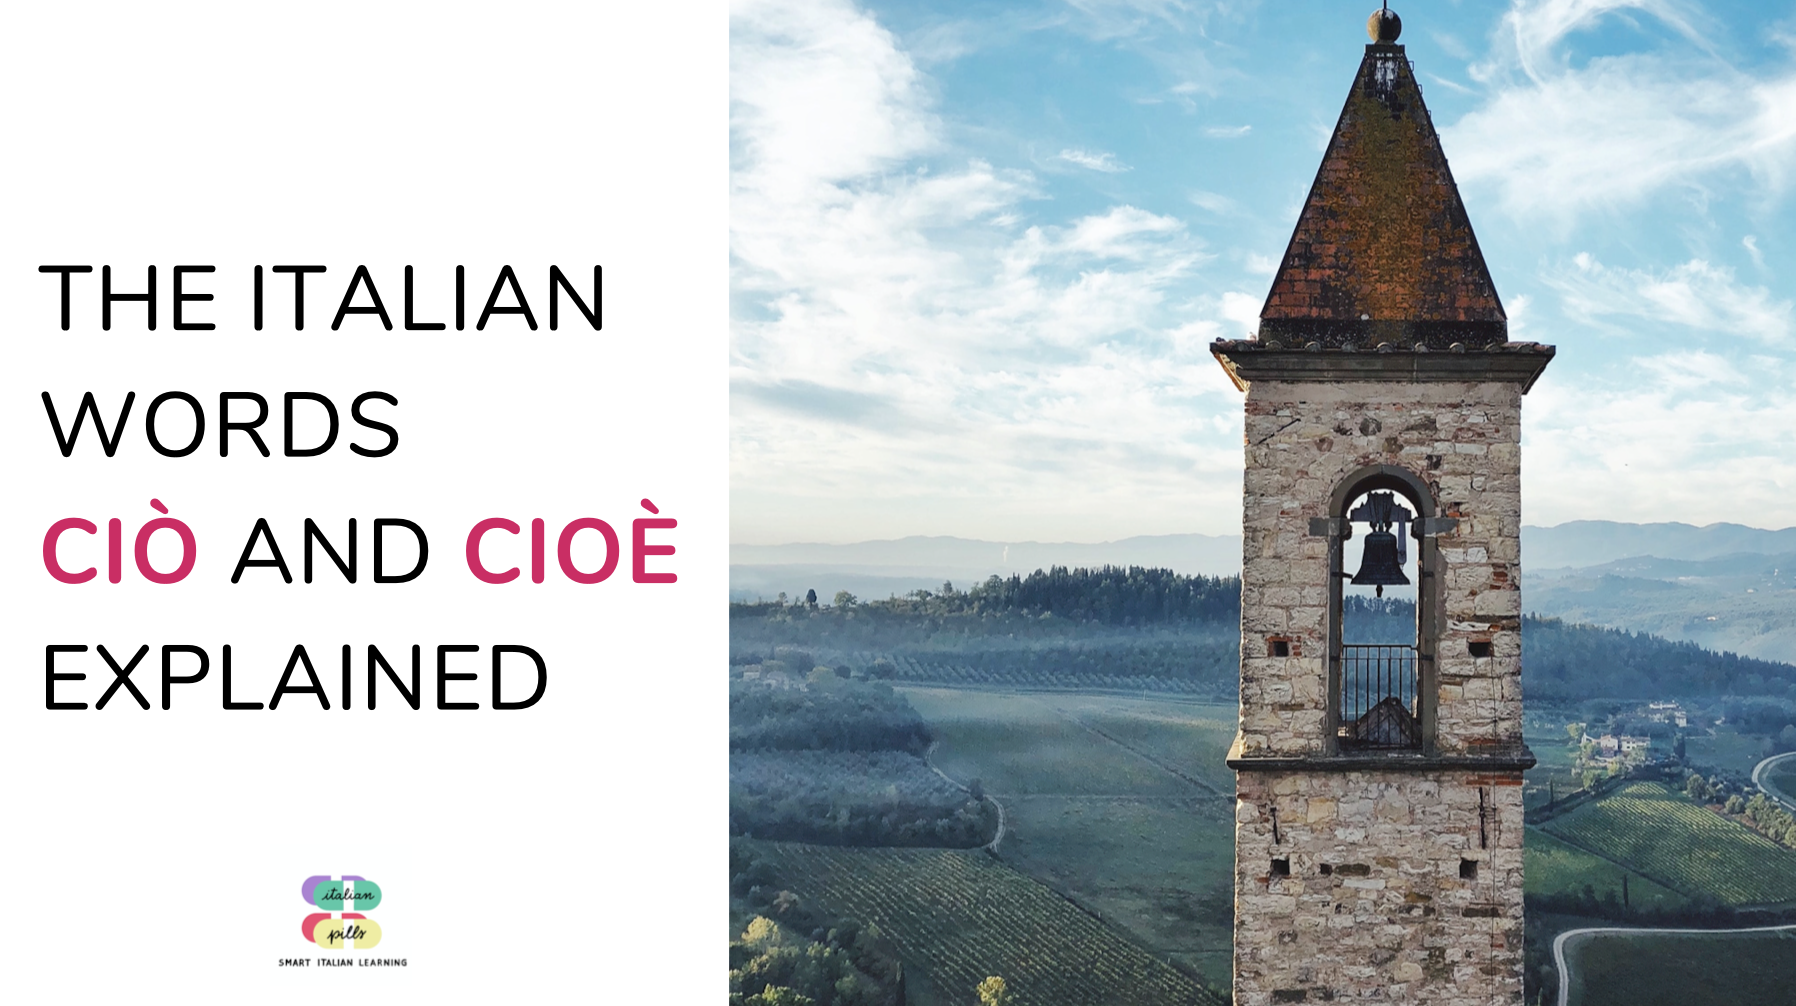 Ciò and cioè explained